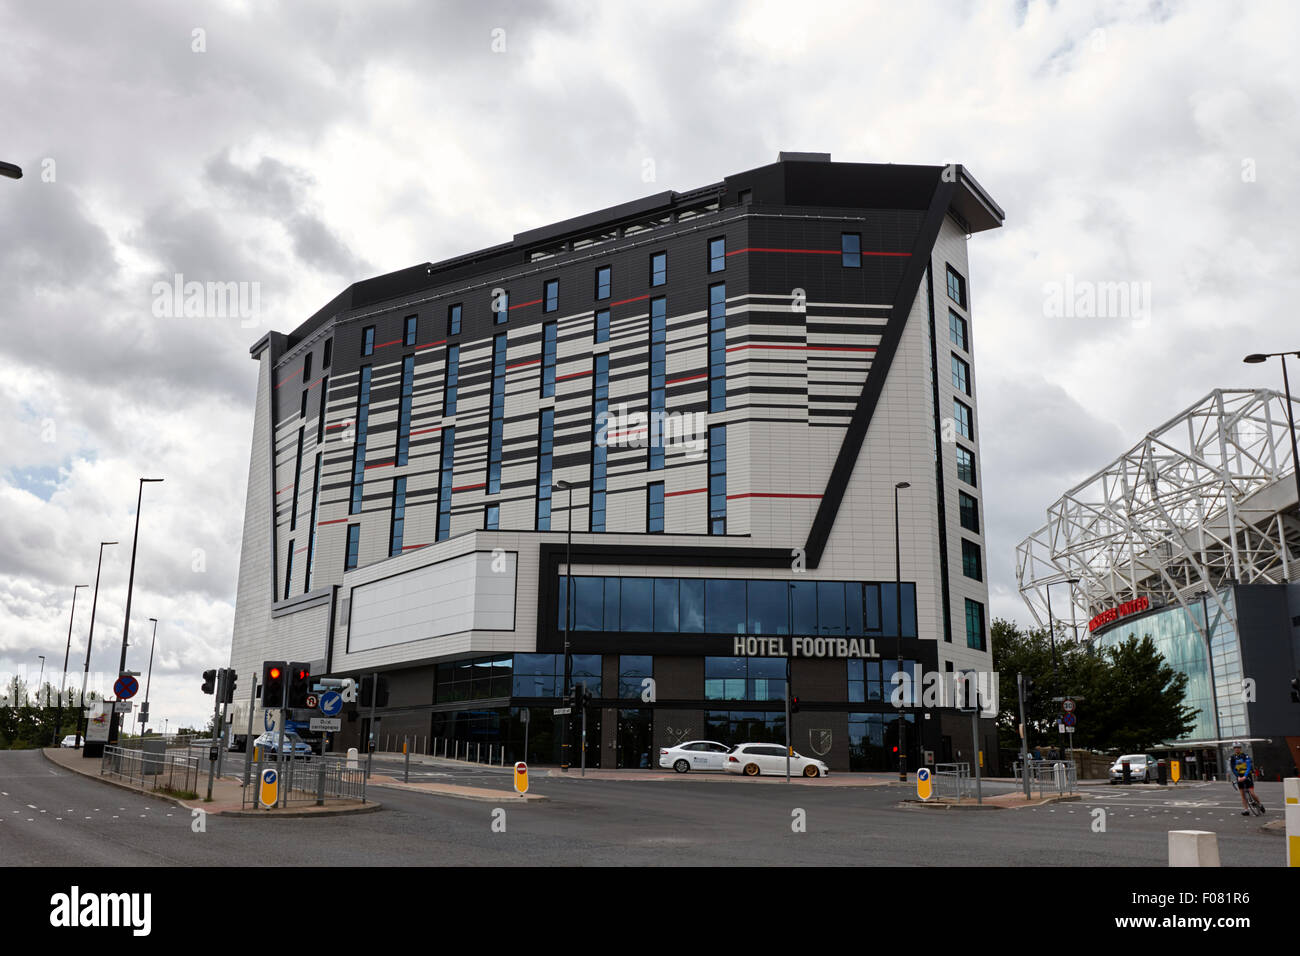 hotel football old trafford Manchester uk - Stock Image